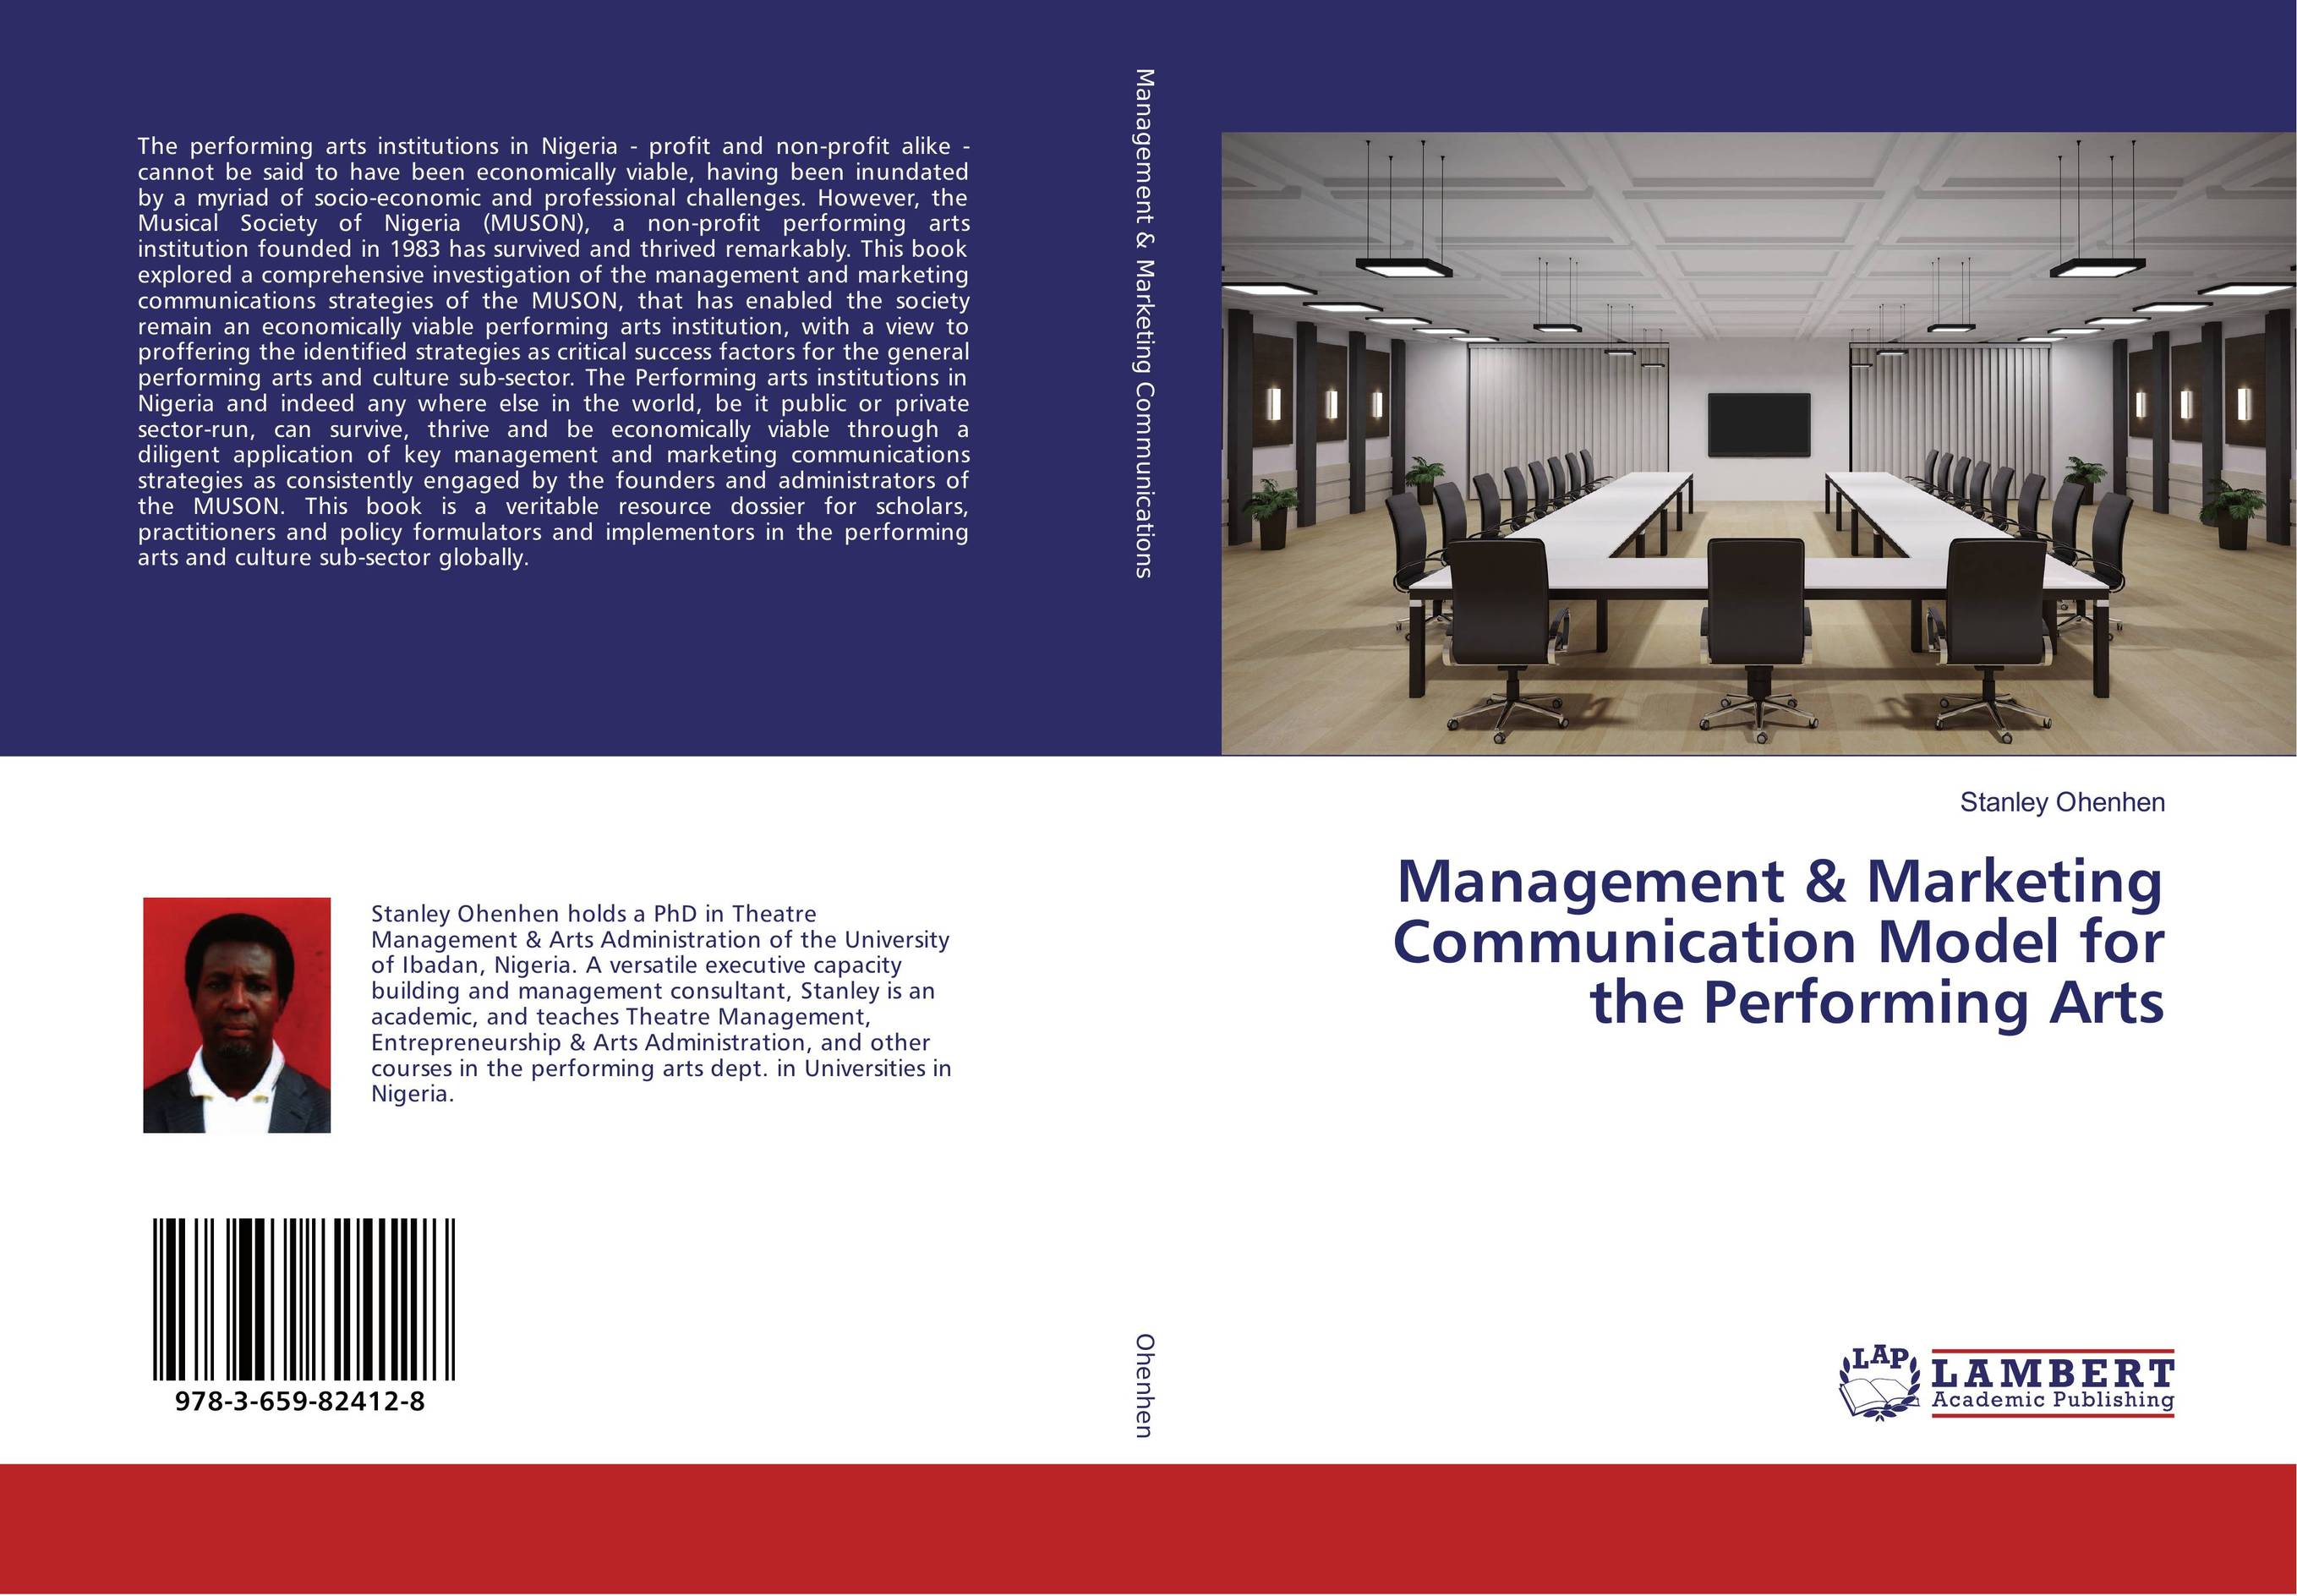 Management & Marketing Communication Model for the Performing Arts agricultural marketing management